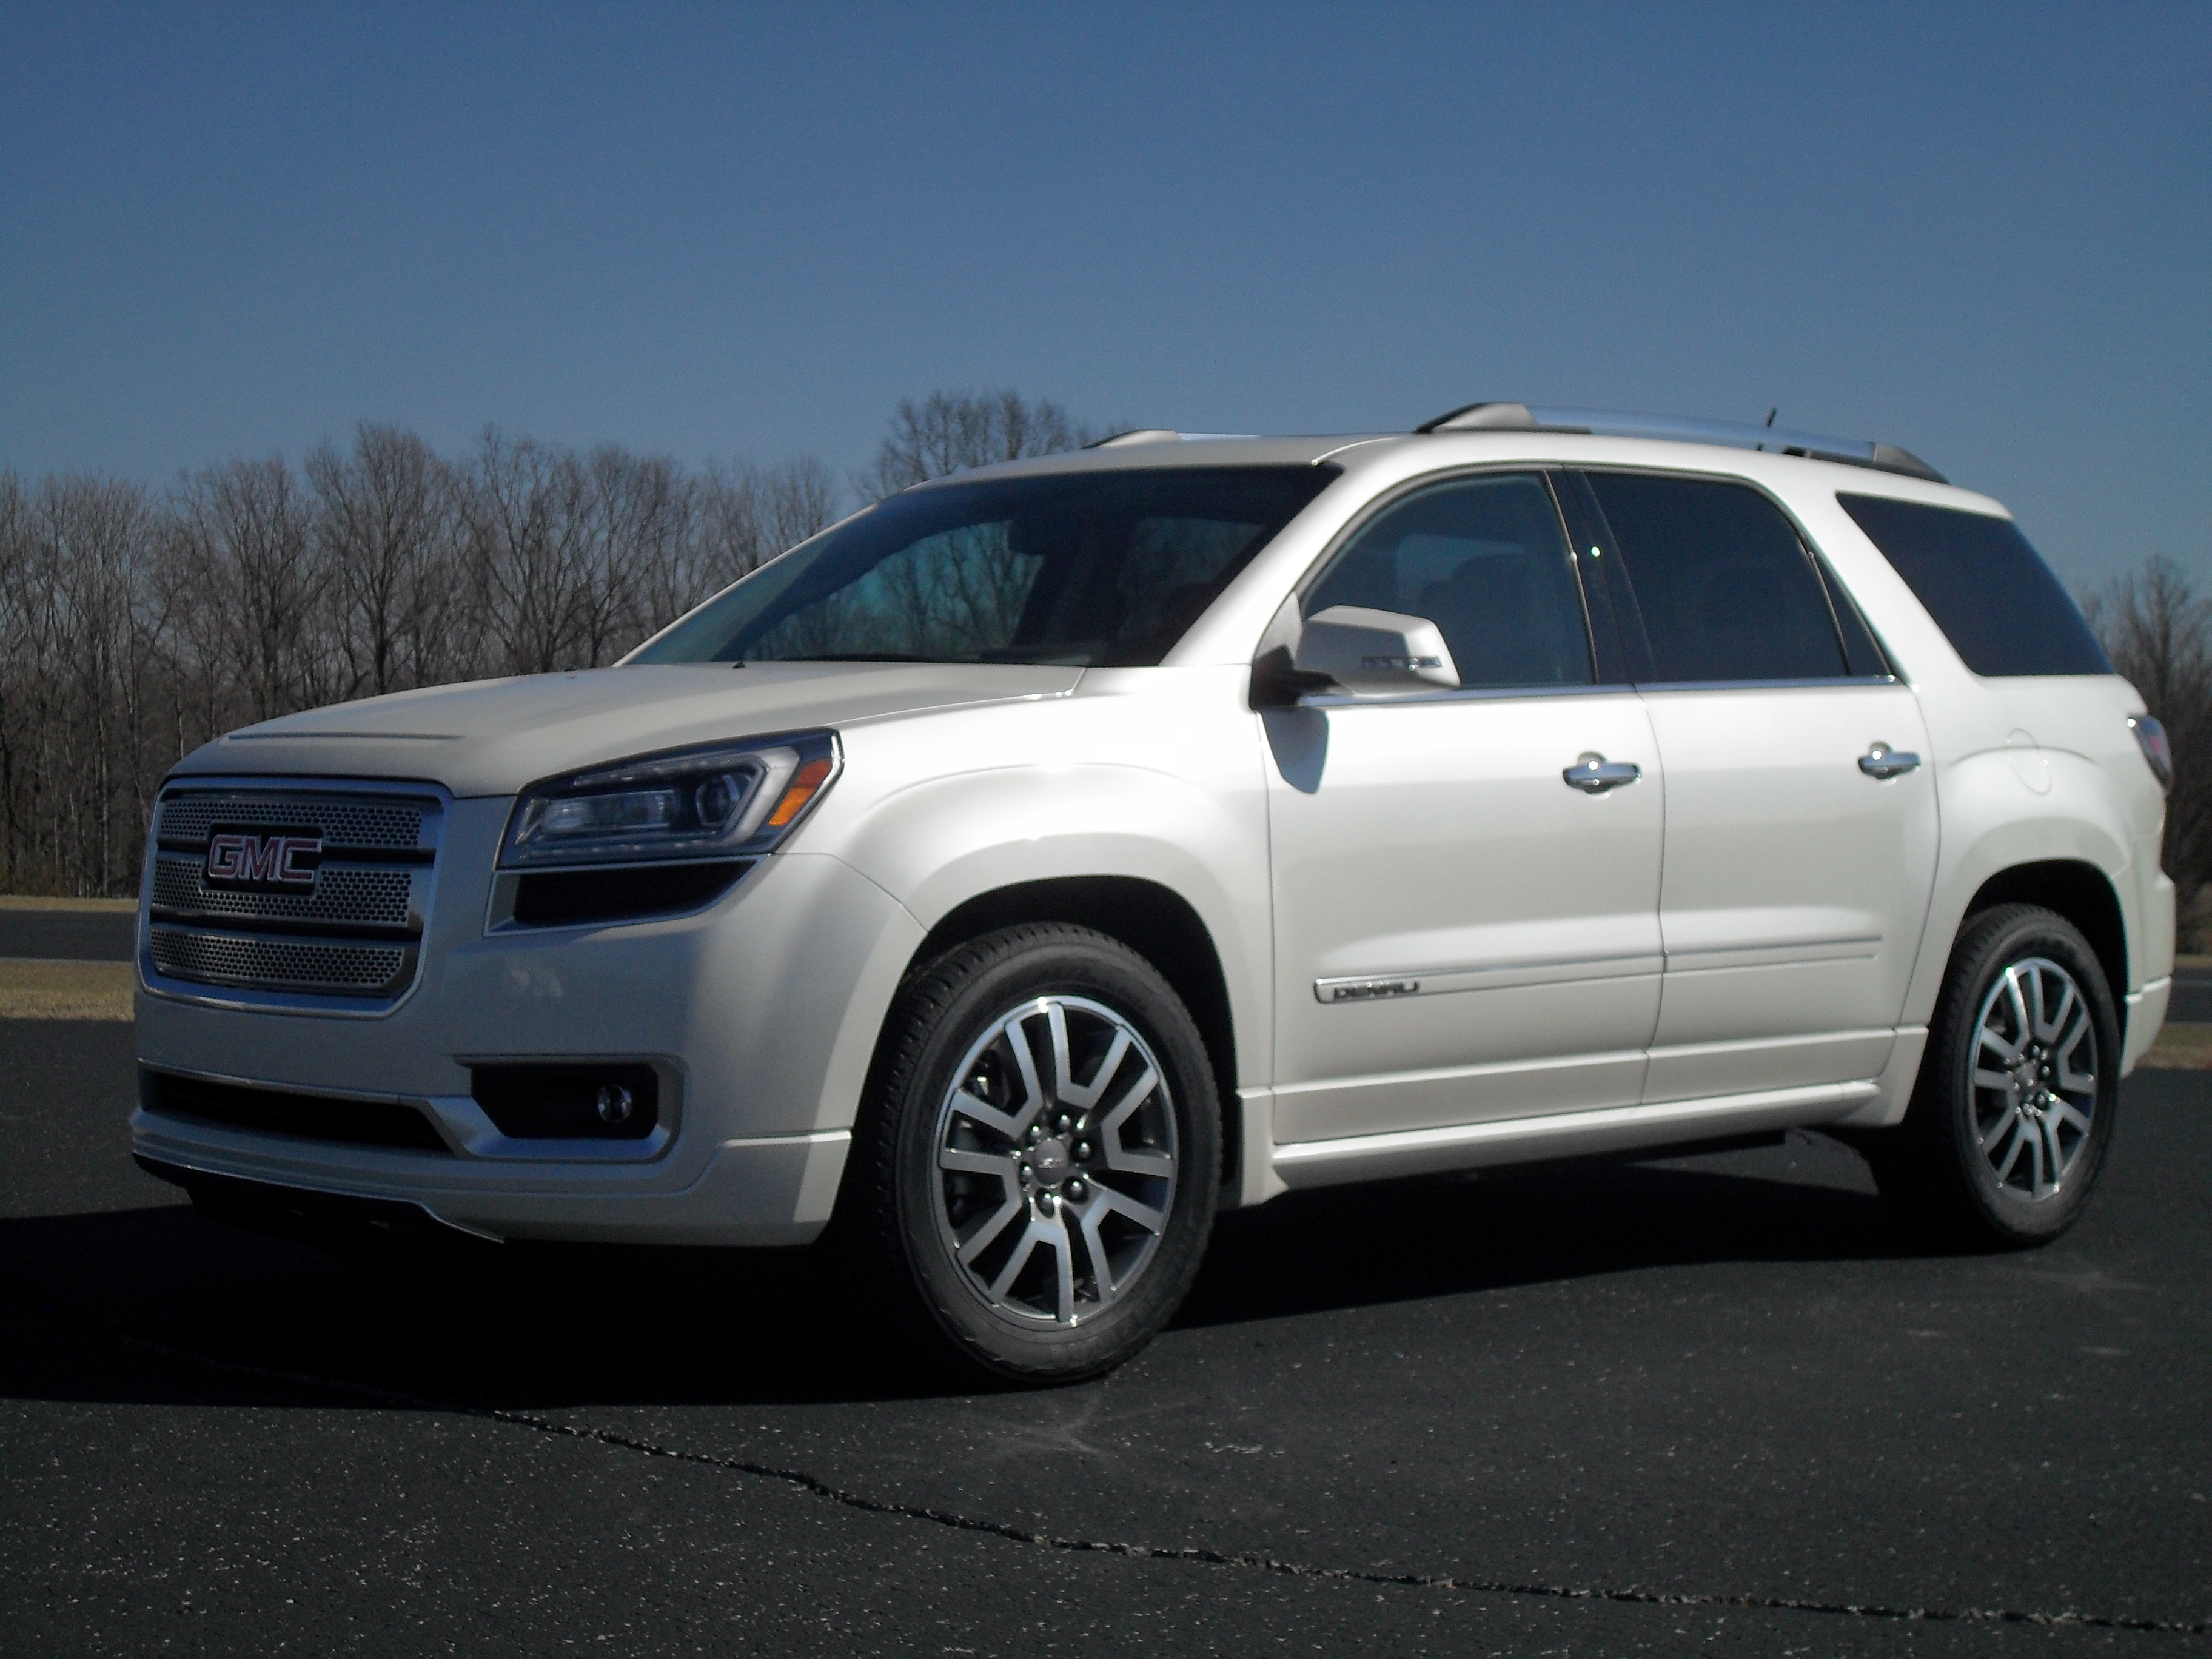 2013 gmc acadia pictures information and specs auto. Black Bedroom Furniture Sets. Home Design Ideas